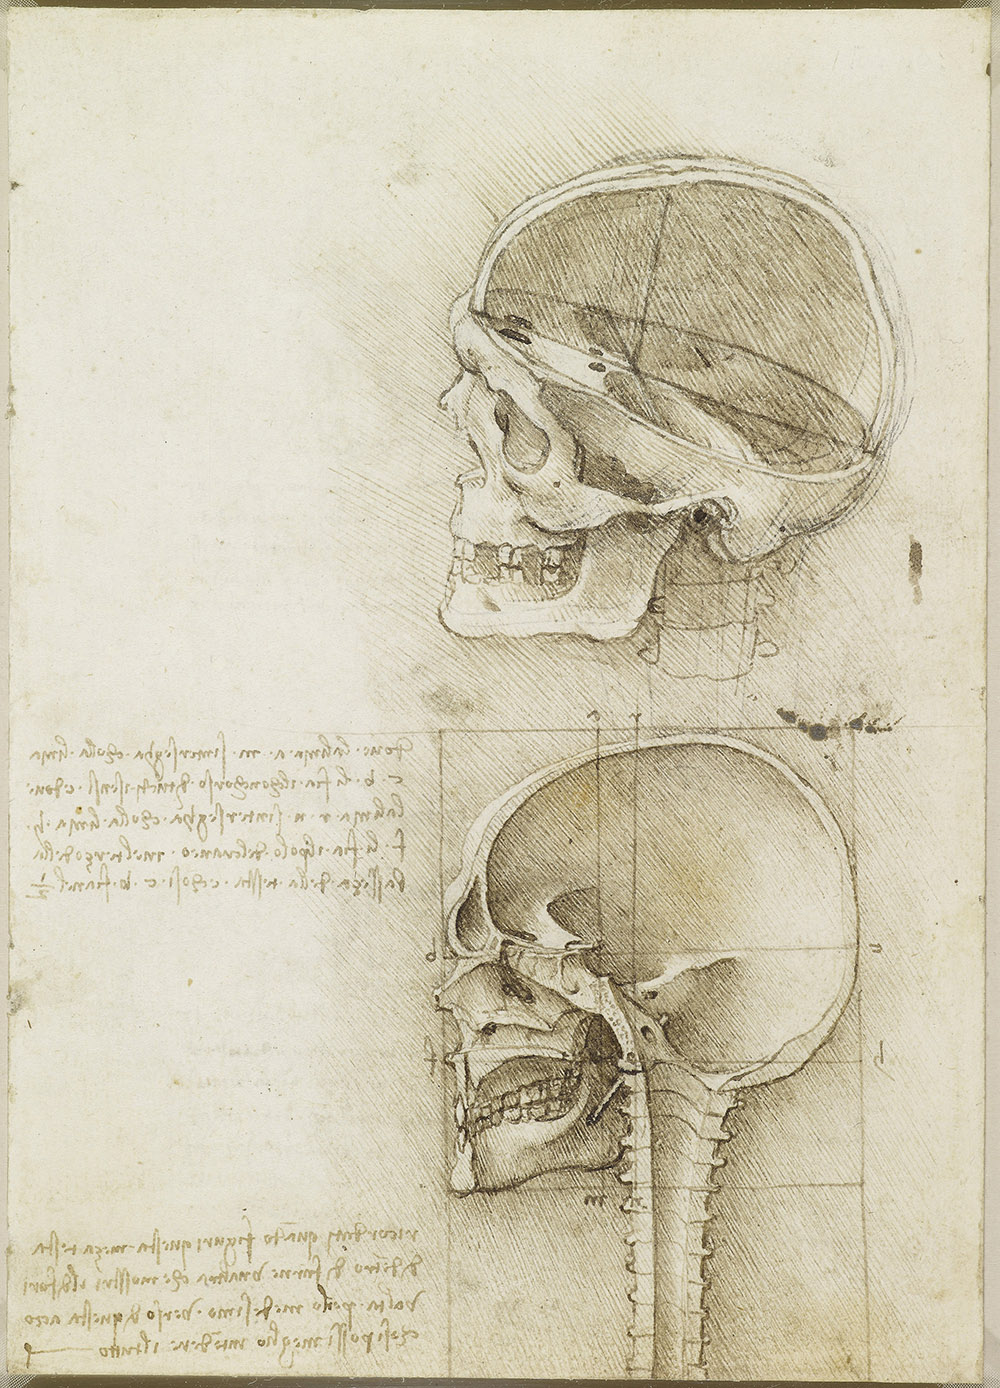 The skull sectioned, 1489  Leonardo wanted to find the relationship between an individual's emotions, pose and expression so that he could paint a figure more convincingly. He therefore investigated the links between the brain and the rest of the body, determining the paths of the sensory nerves and trying to find the location of the senso comune, the supposed site at which the senses converged – the centre of human experience, and thus the site of the soul. In April 1489 he cut a human skull in a variety of sections to study its external and internal structure. The lower drawing shows the skull sawn in half within a perfect square, the senso comune at the exact midpoint of the height of the skull and a third of the way back. Leonardo's grasp of three-dimensional structure is remarkable, and elsewhere he compared the cranium to a domed building.  Leeds Art Gallery, Free to all, 10% off in shop with National Art Pass -